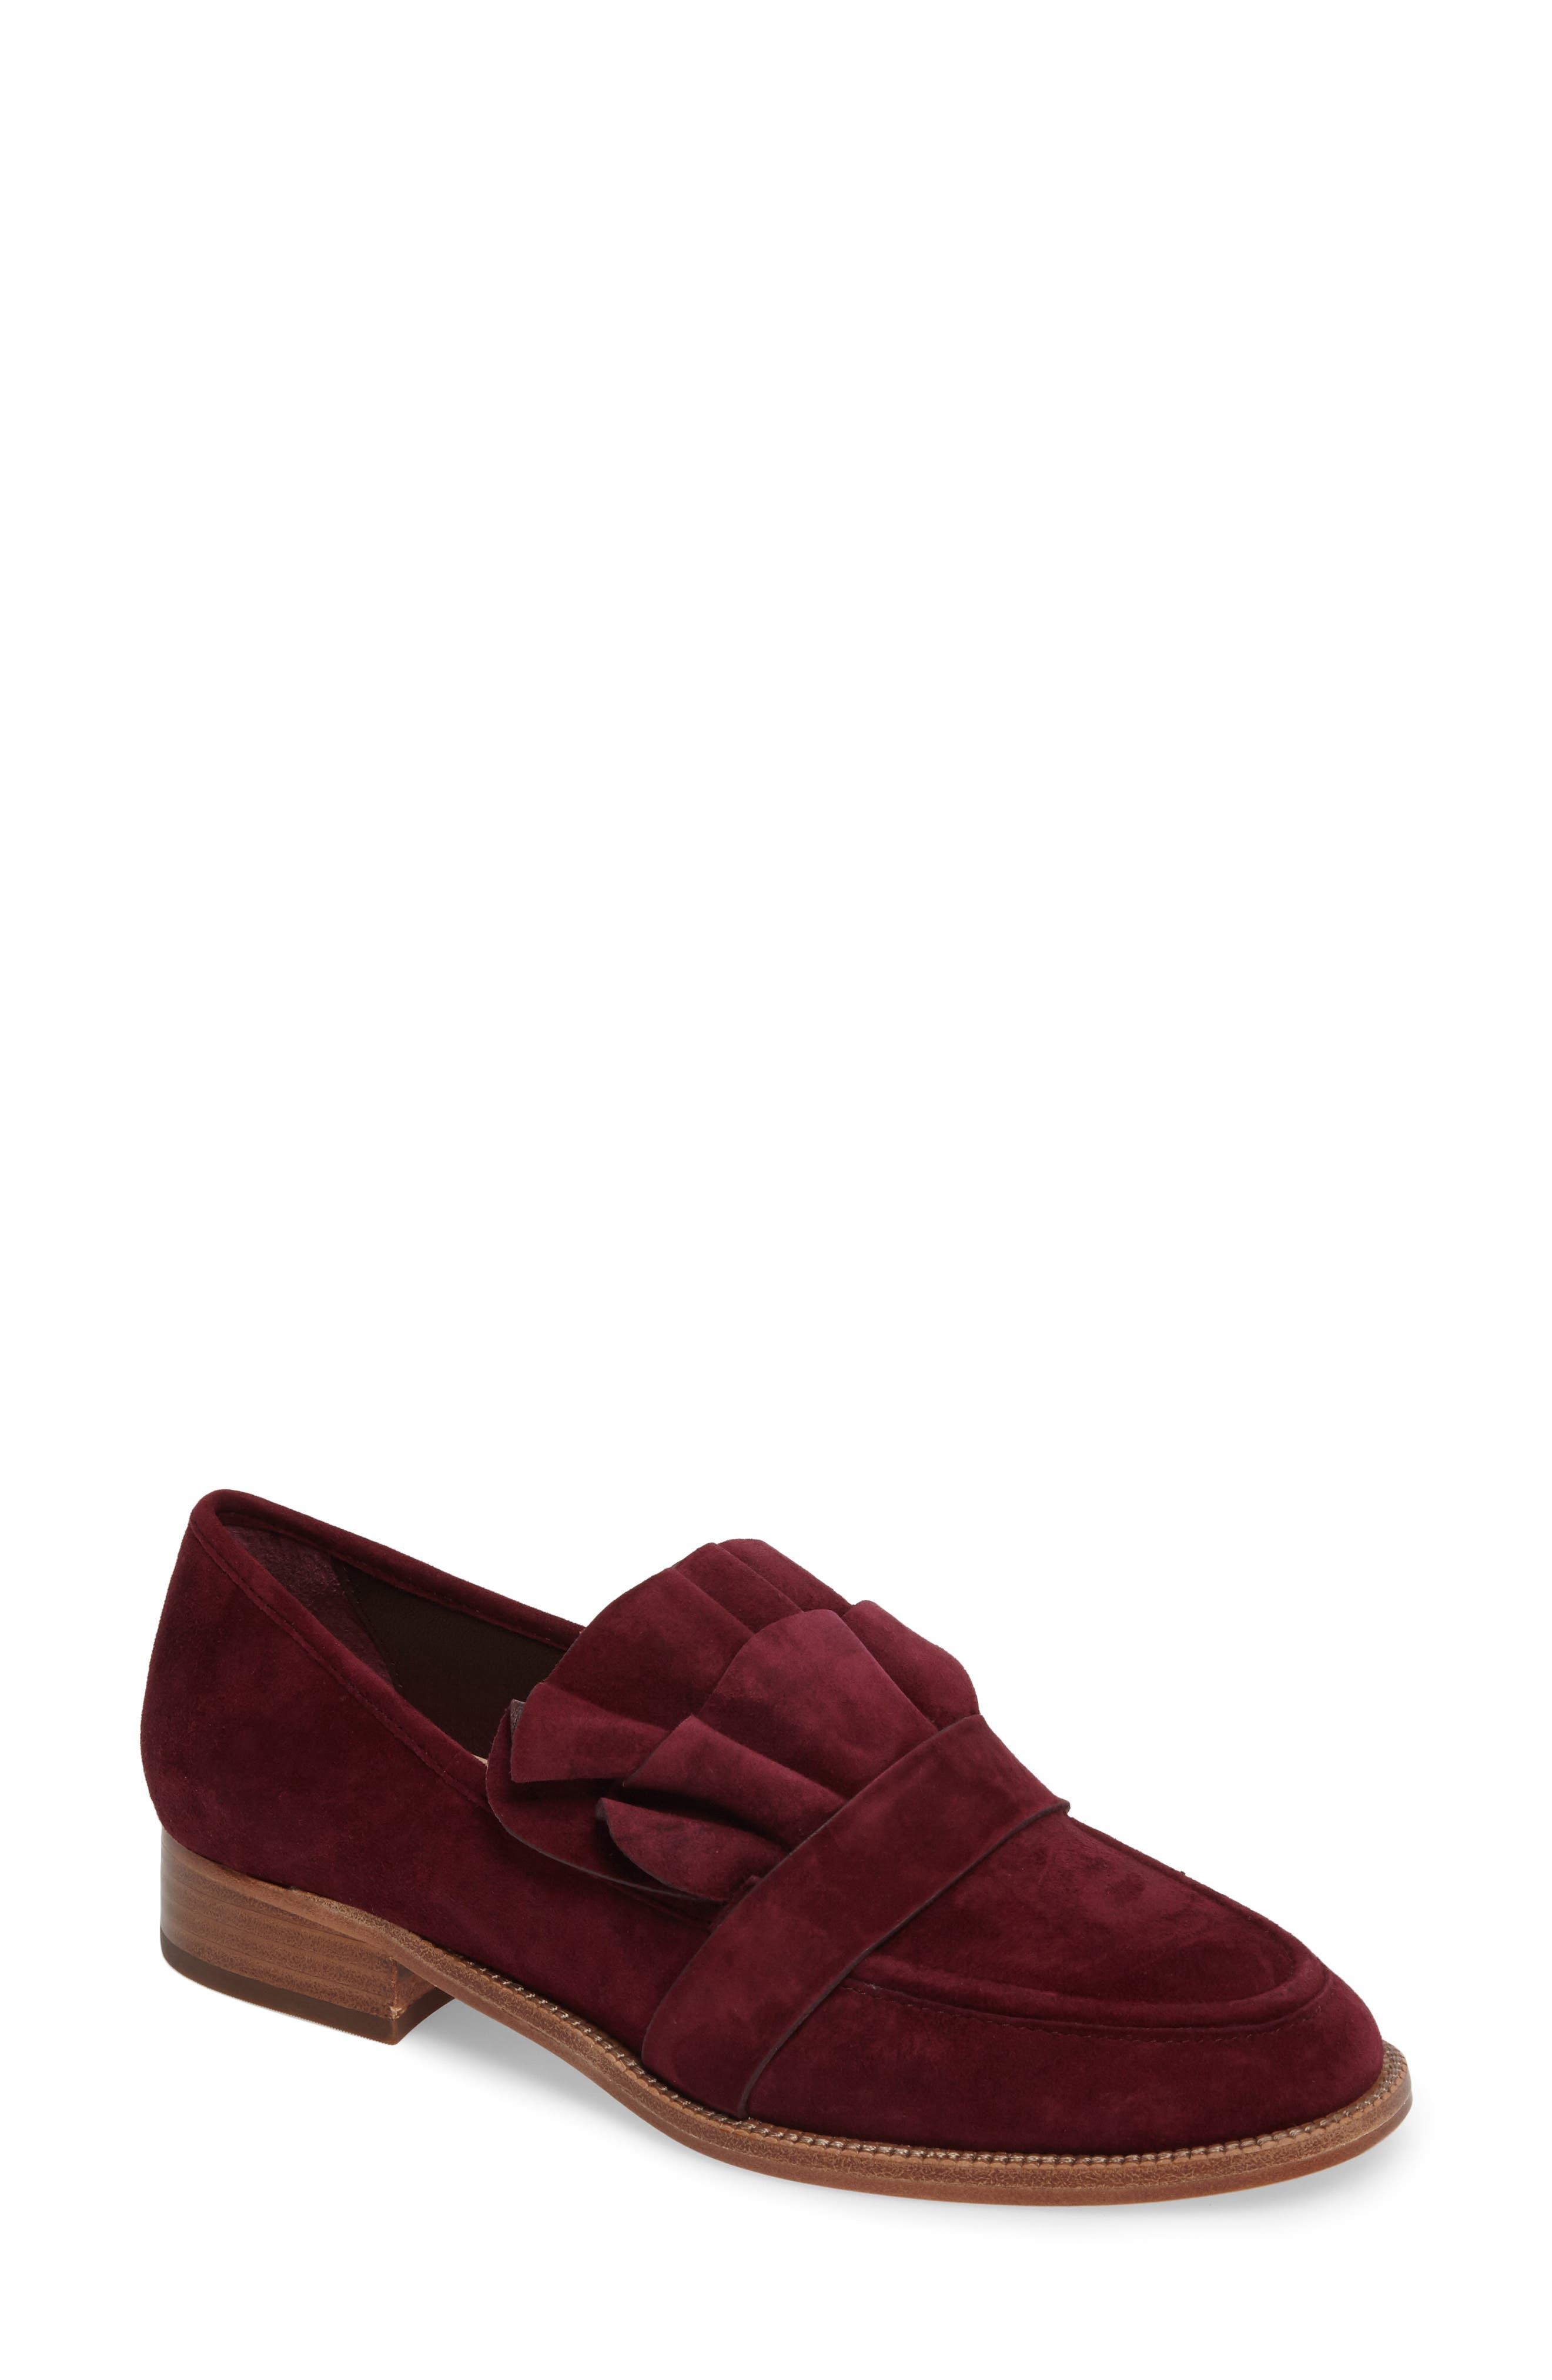 Alternate Image 1 Selected - Pour la Victoire Tenley Ruffled Loafer (Women)